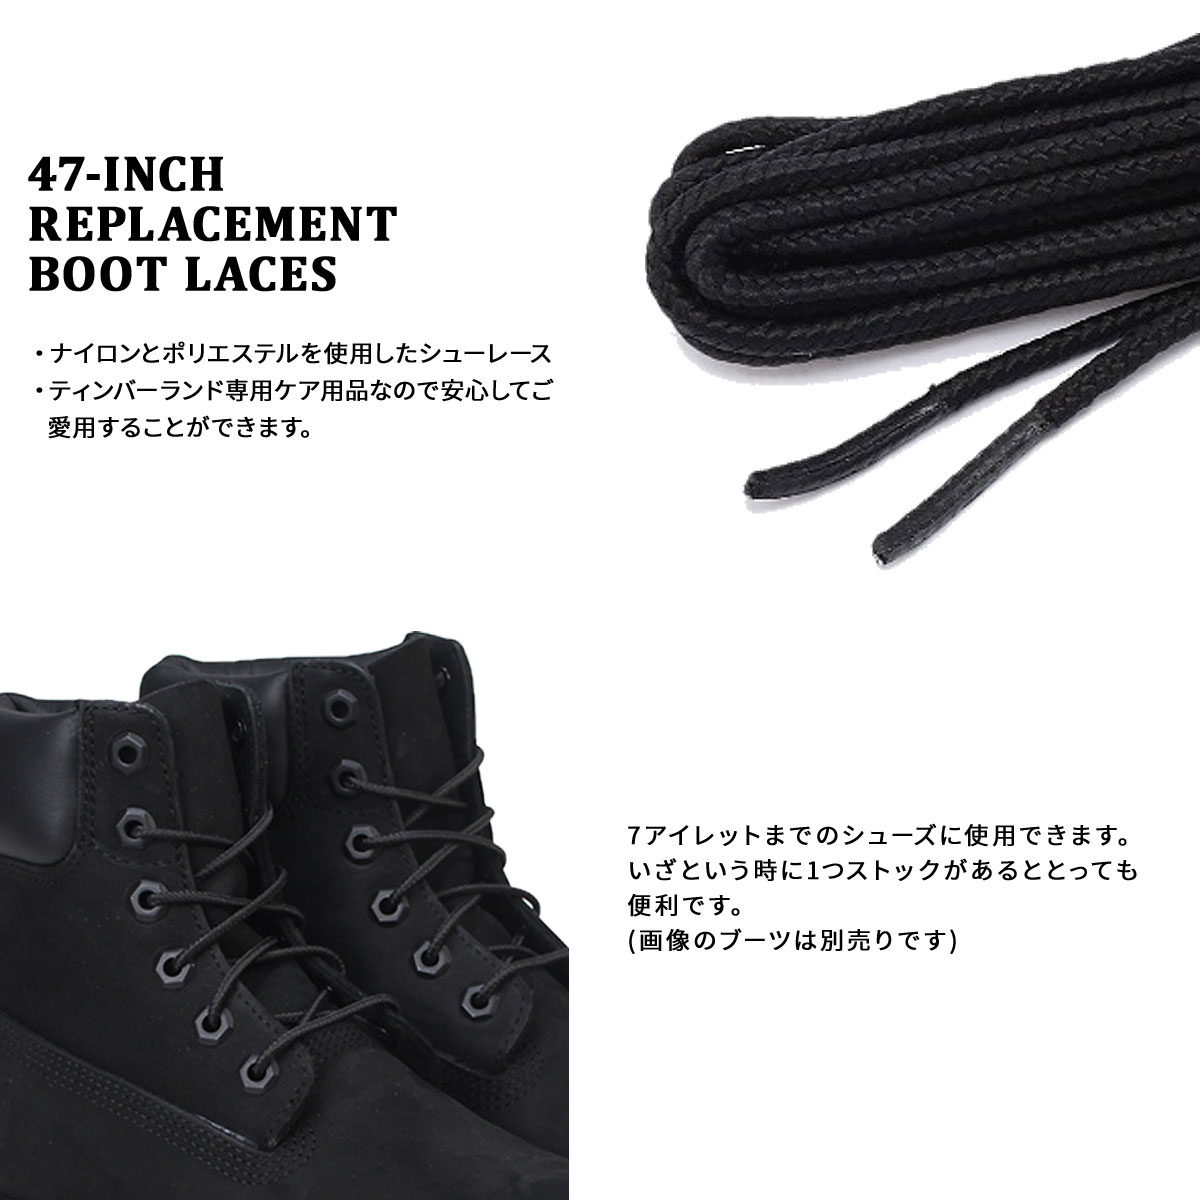 47 inches of Timberland 47 INCH REPLACEMENT BOOT LACES Timberland Shoo race shoelace shoelace 120cm maru pure boots sneakers A1FNX [192]